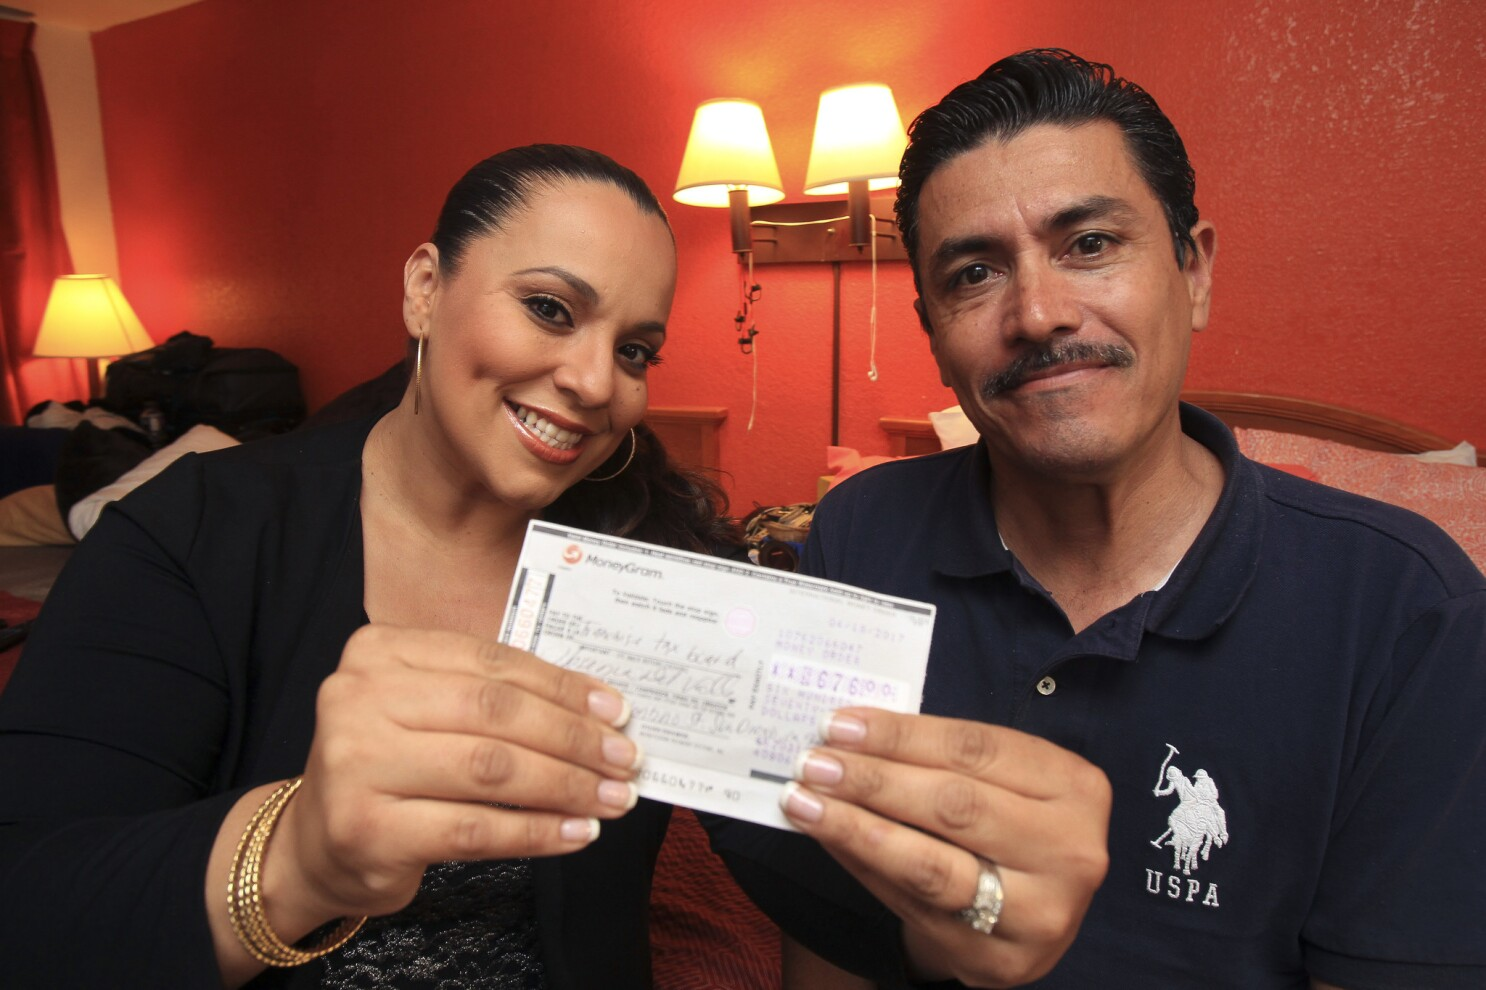 San Diego man turns in $676 check, luck instantly turns around